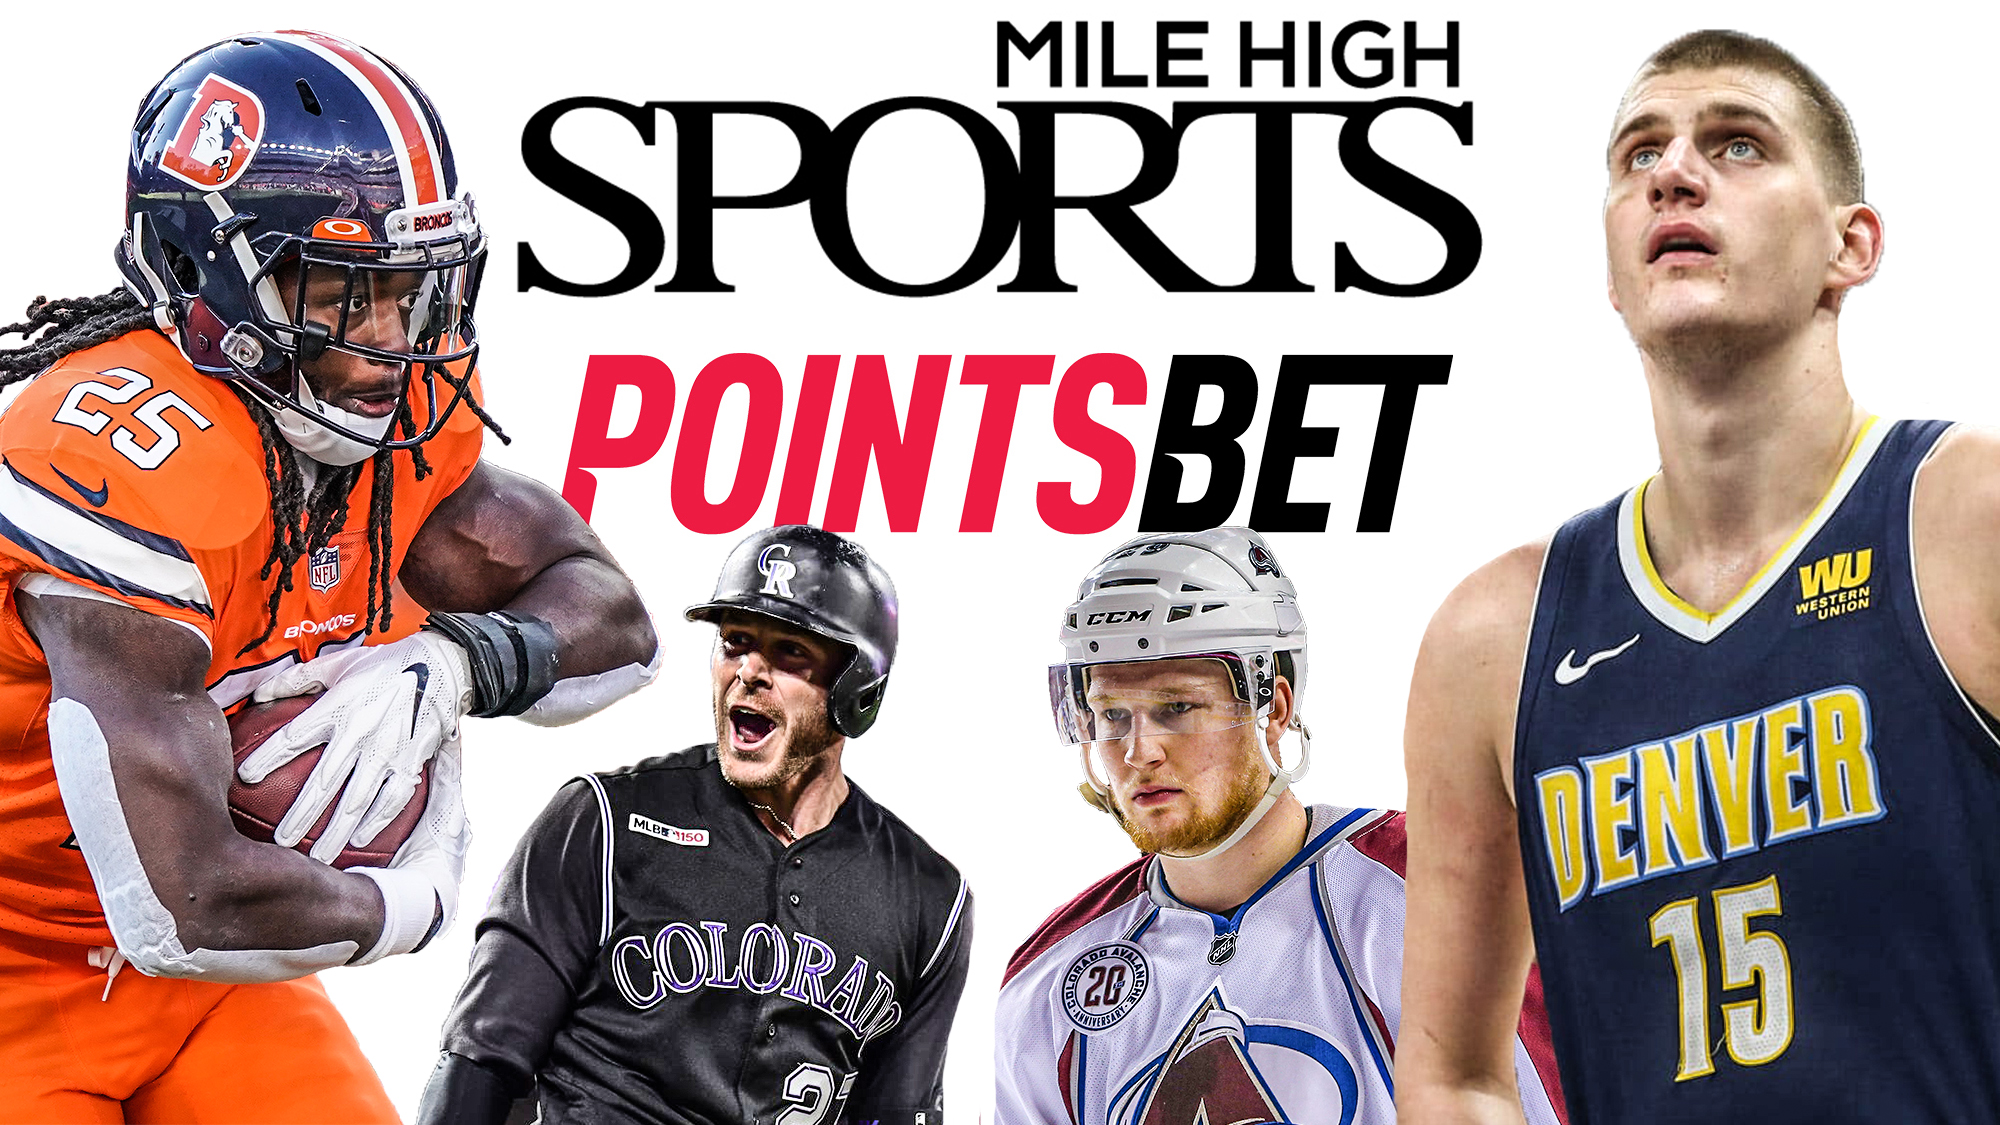 Mile High Sports, PointsBet, Online Colorado Sports Betting